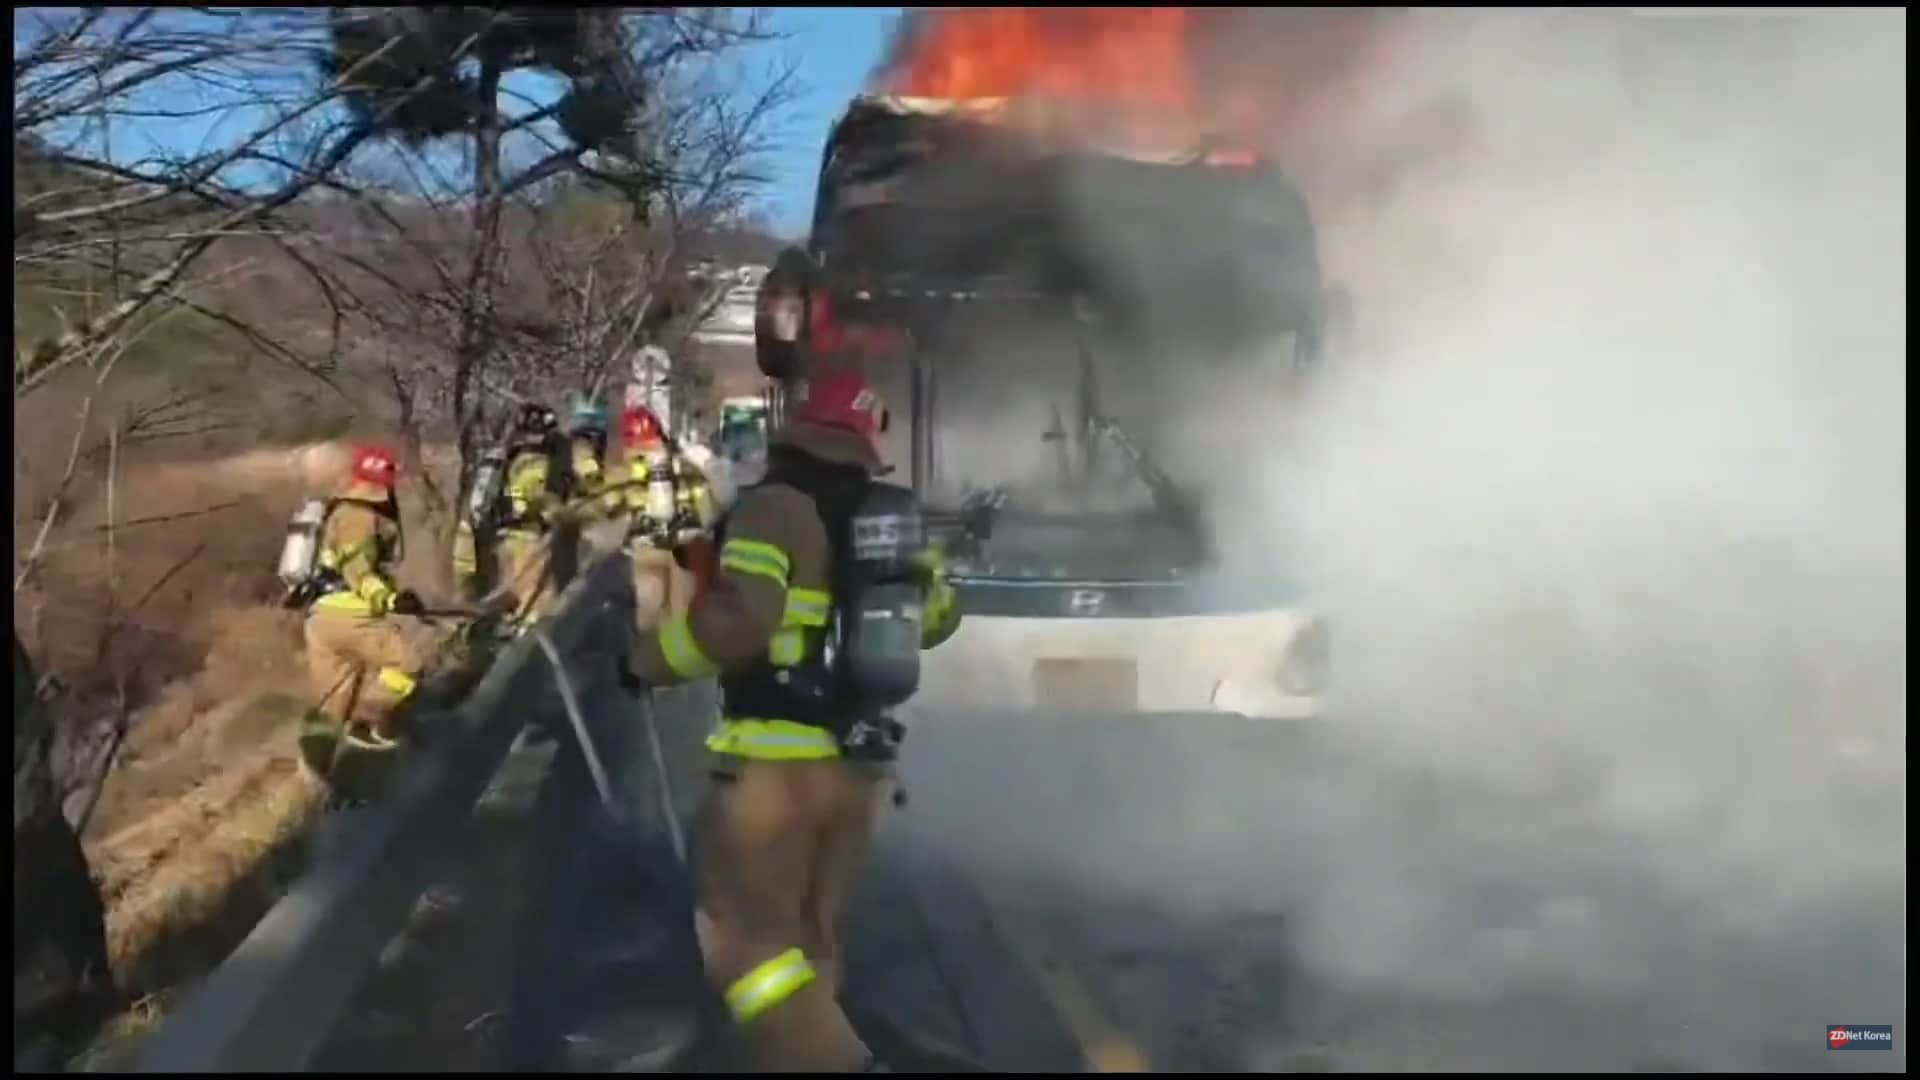 Hyundai's electric bus caught fire this week. Image: YouTube / Playback